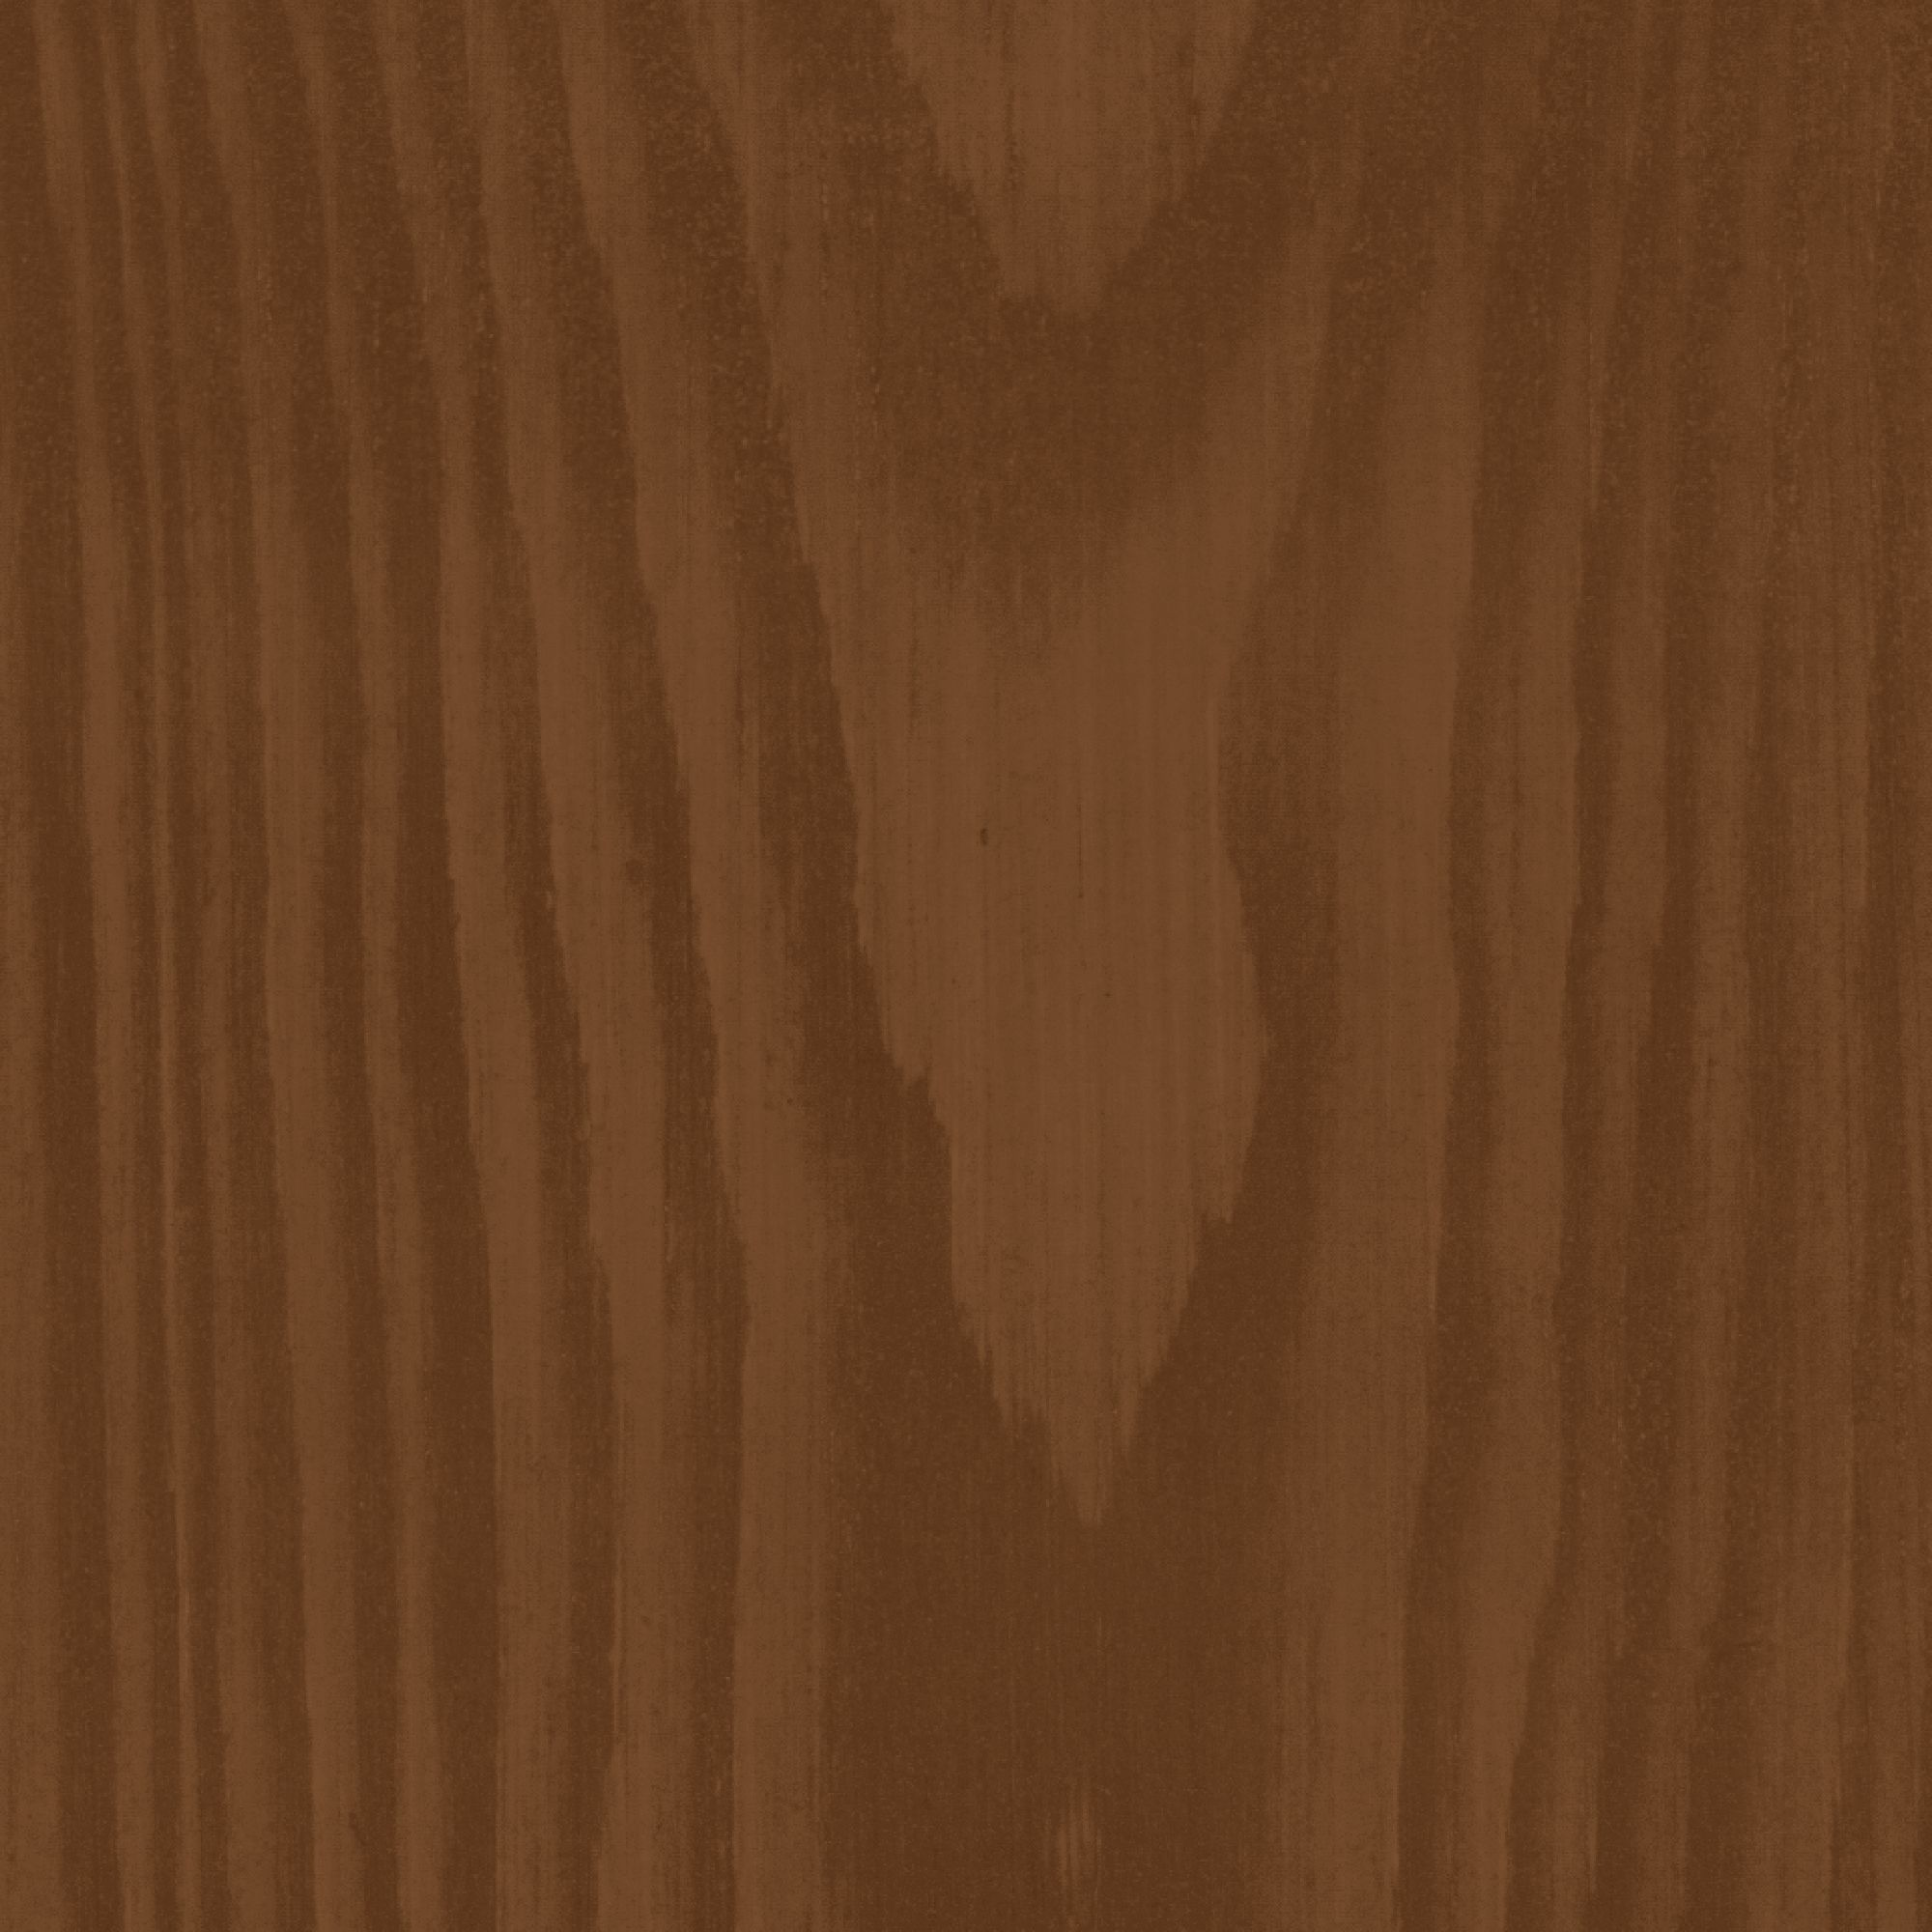 Dulux Church Oak Satin Wood Stain Varnish Departments Tradepoint